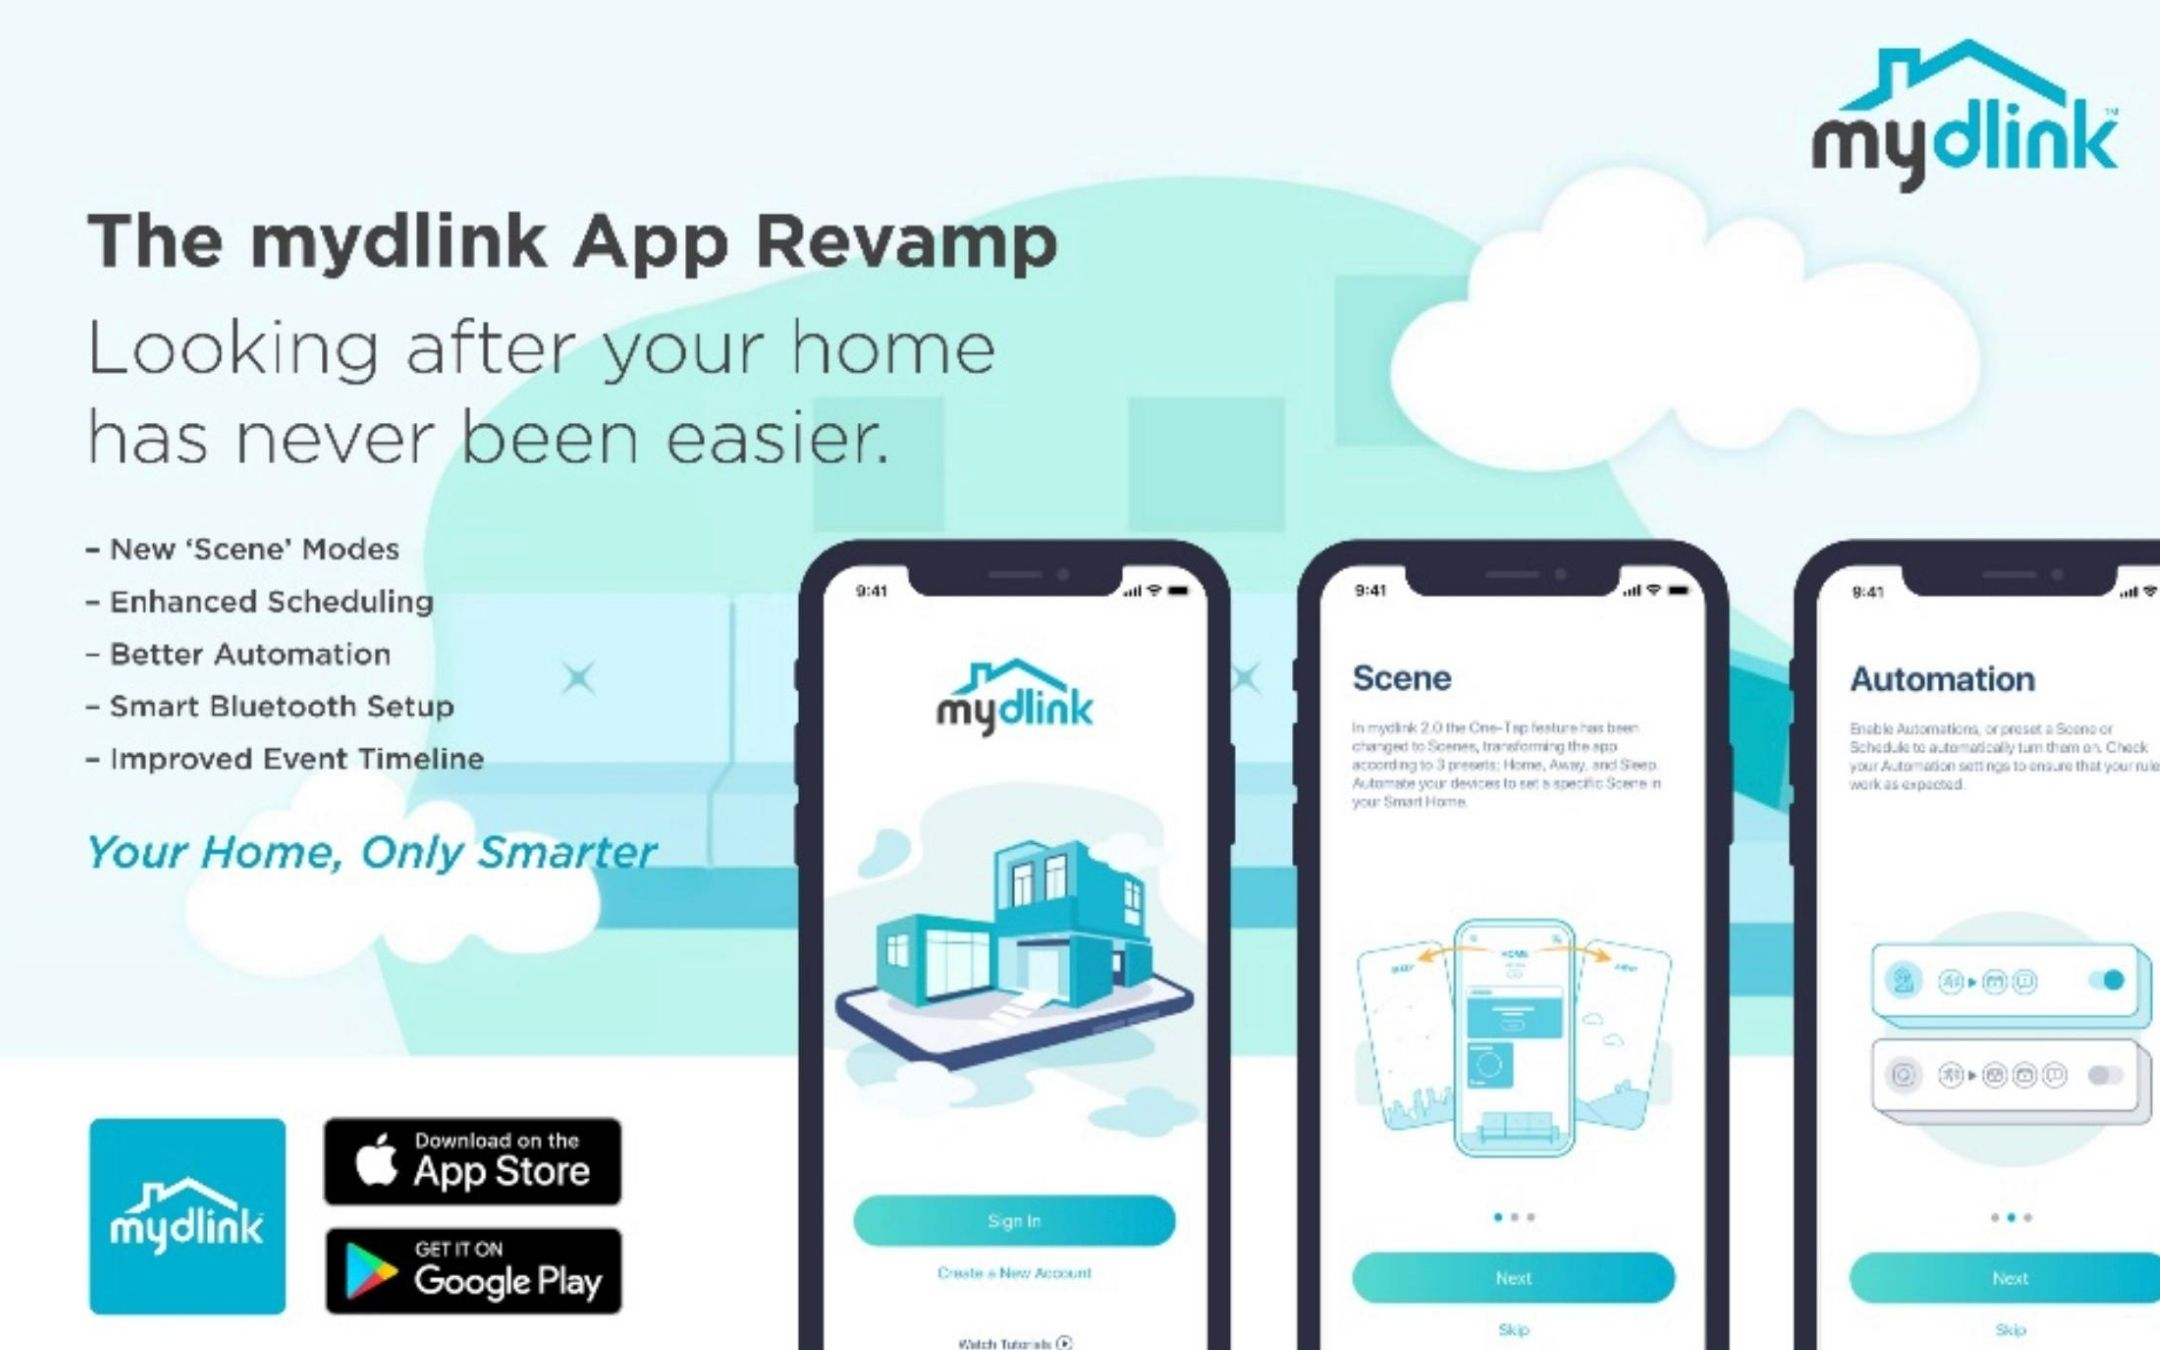 D-Link releases the new mydlink app for managing smart home products